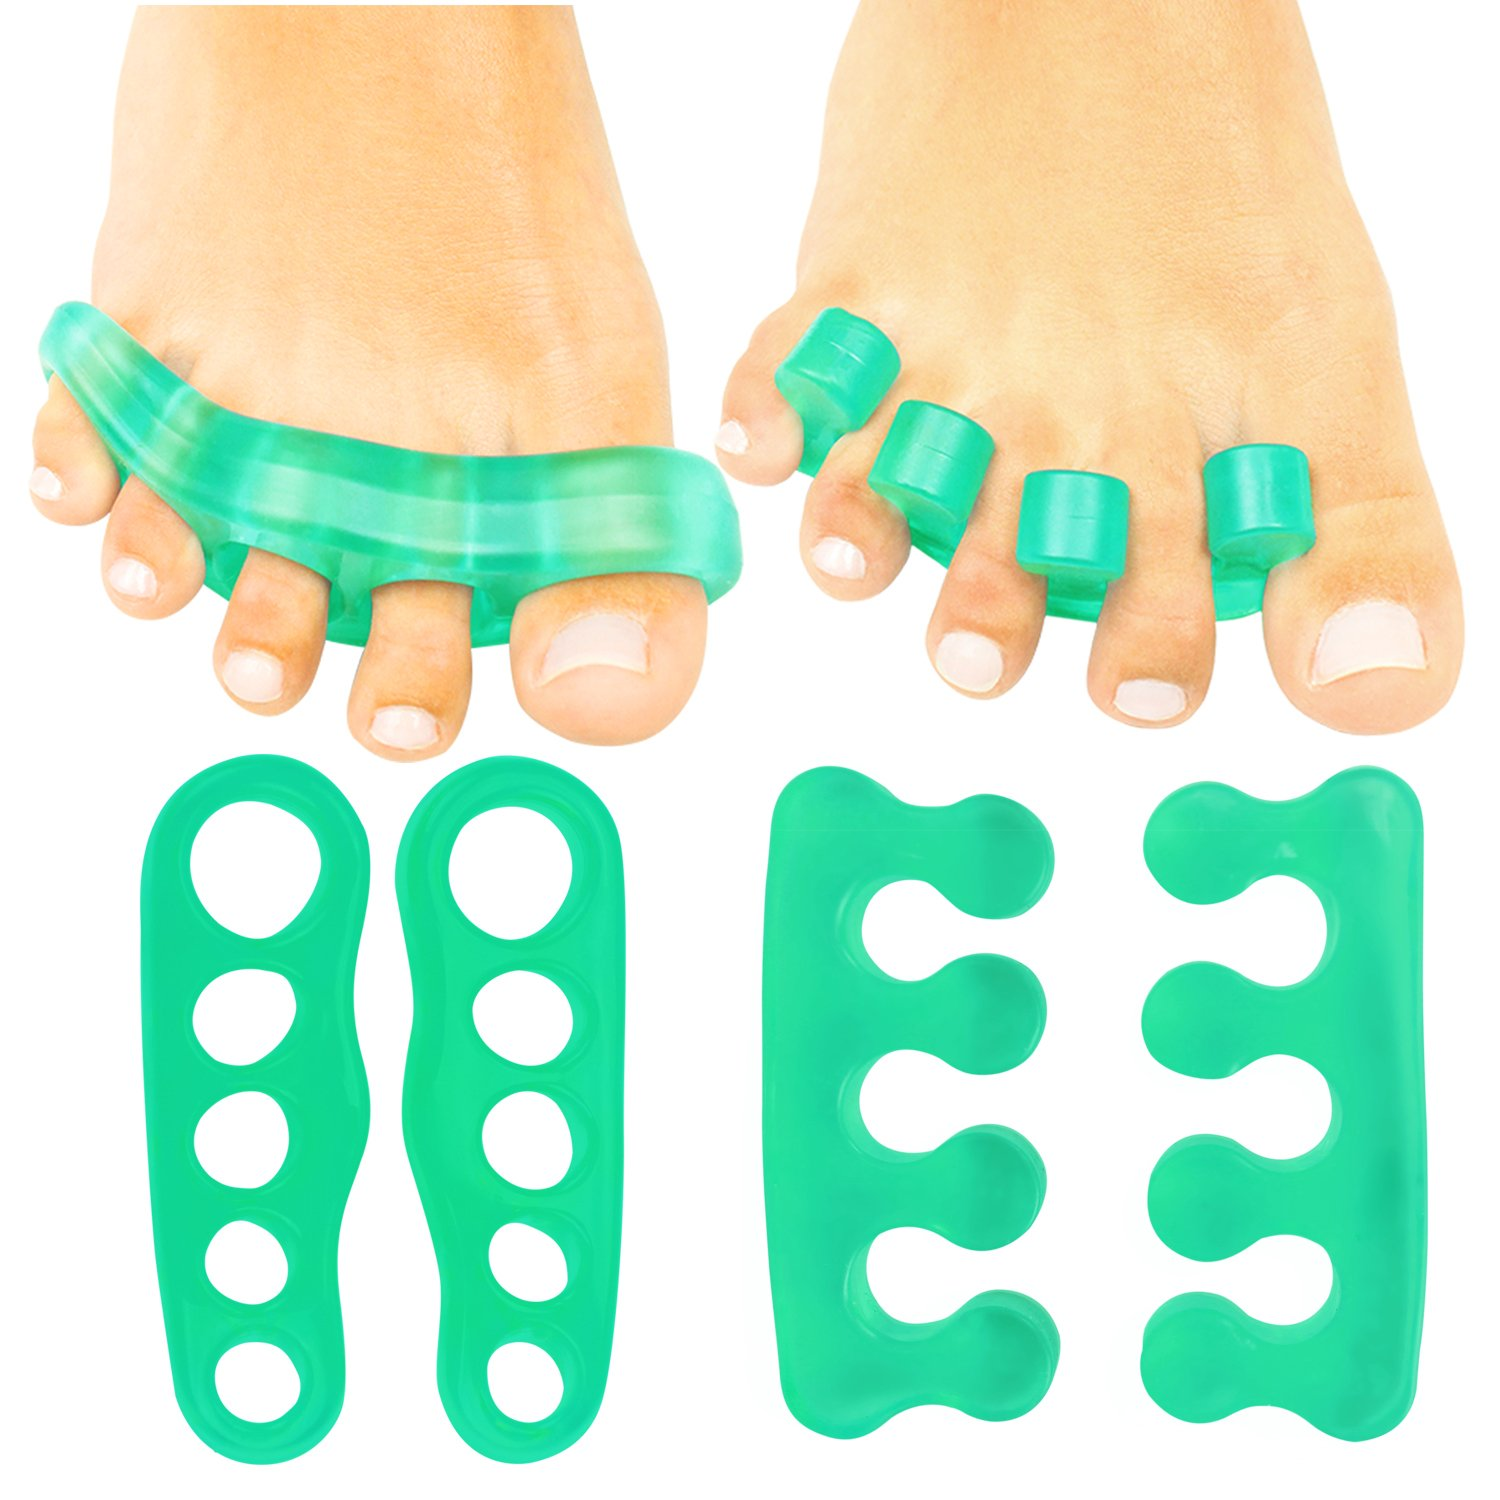 8c5898cb87b4 Get Quotations · Toe Separators by ViveSole - Gel Pedicure   Toe Spreaders  For Foot Yoga - Silicone Spacers